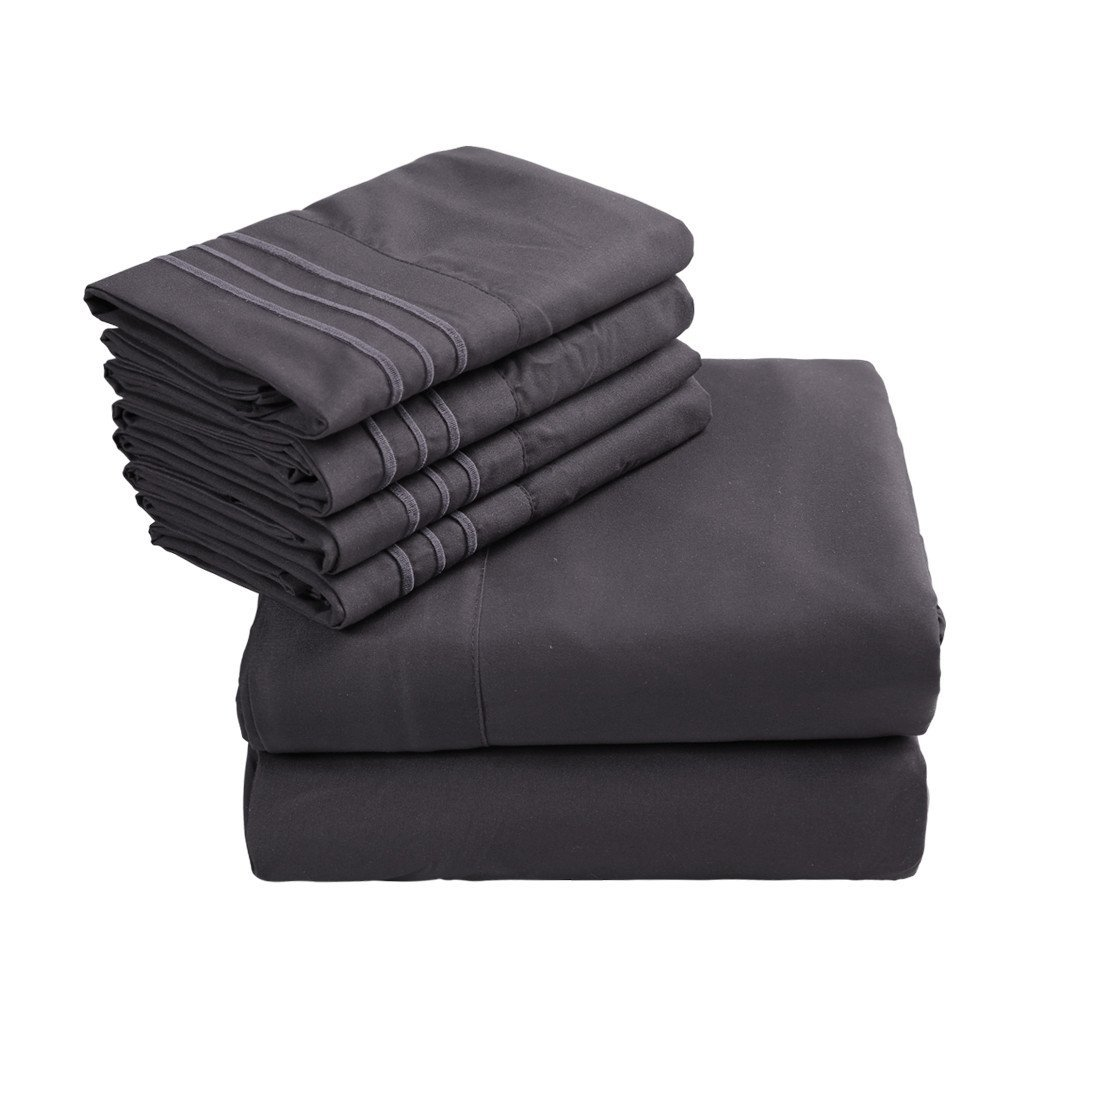 Emonia King Sheets Set - 6 pieces Bed Sheets-Microfiber Super Soft 1800 Series Deep Pocket Fitted Sheets-Wrinkle Fade Resistant (Dark Grey, King)